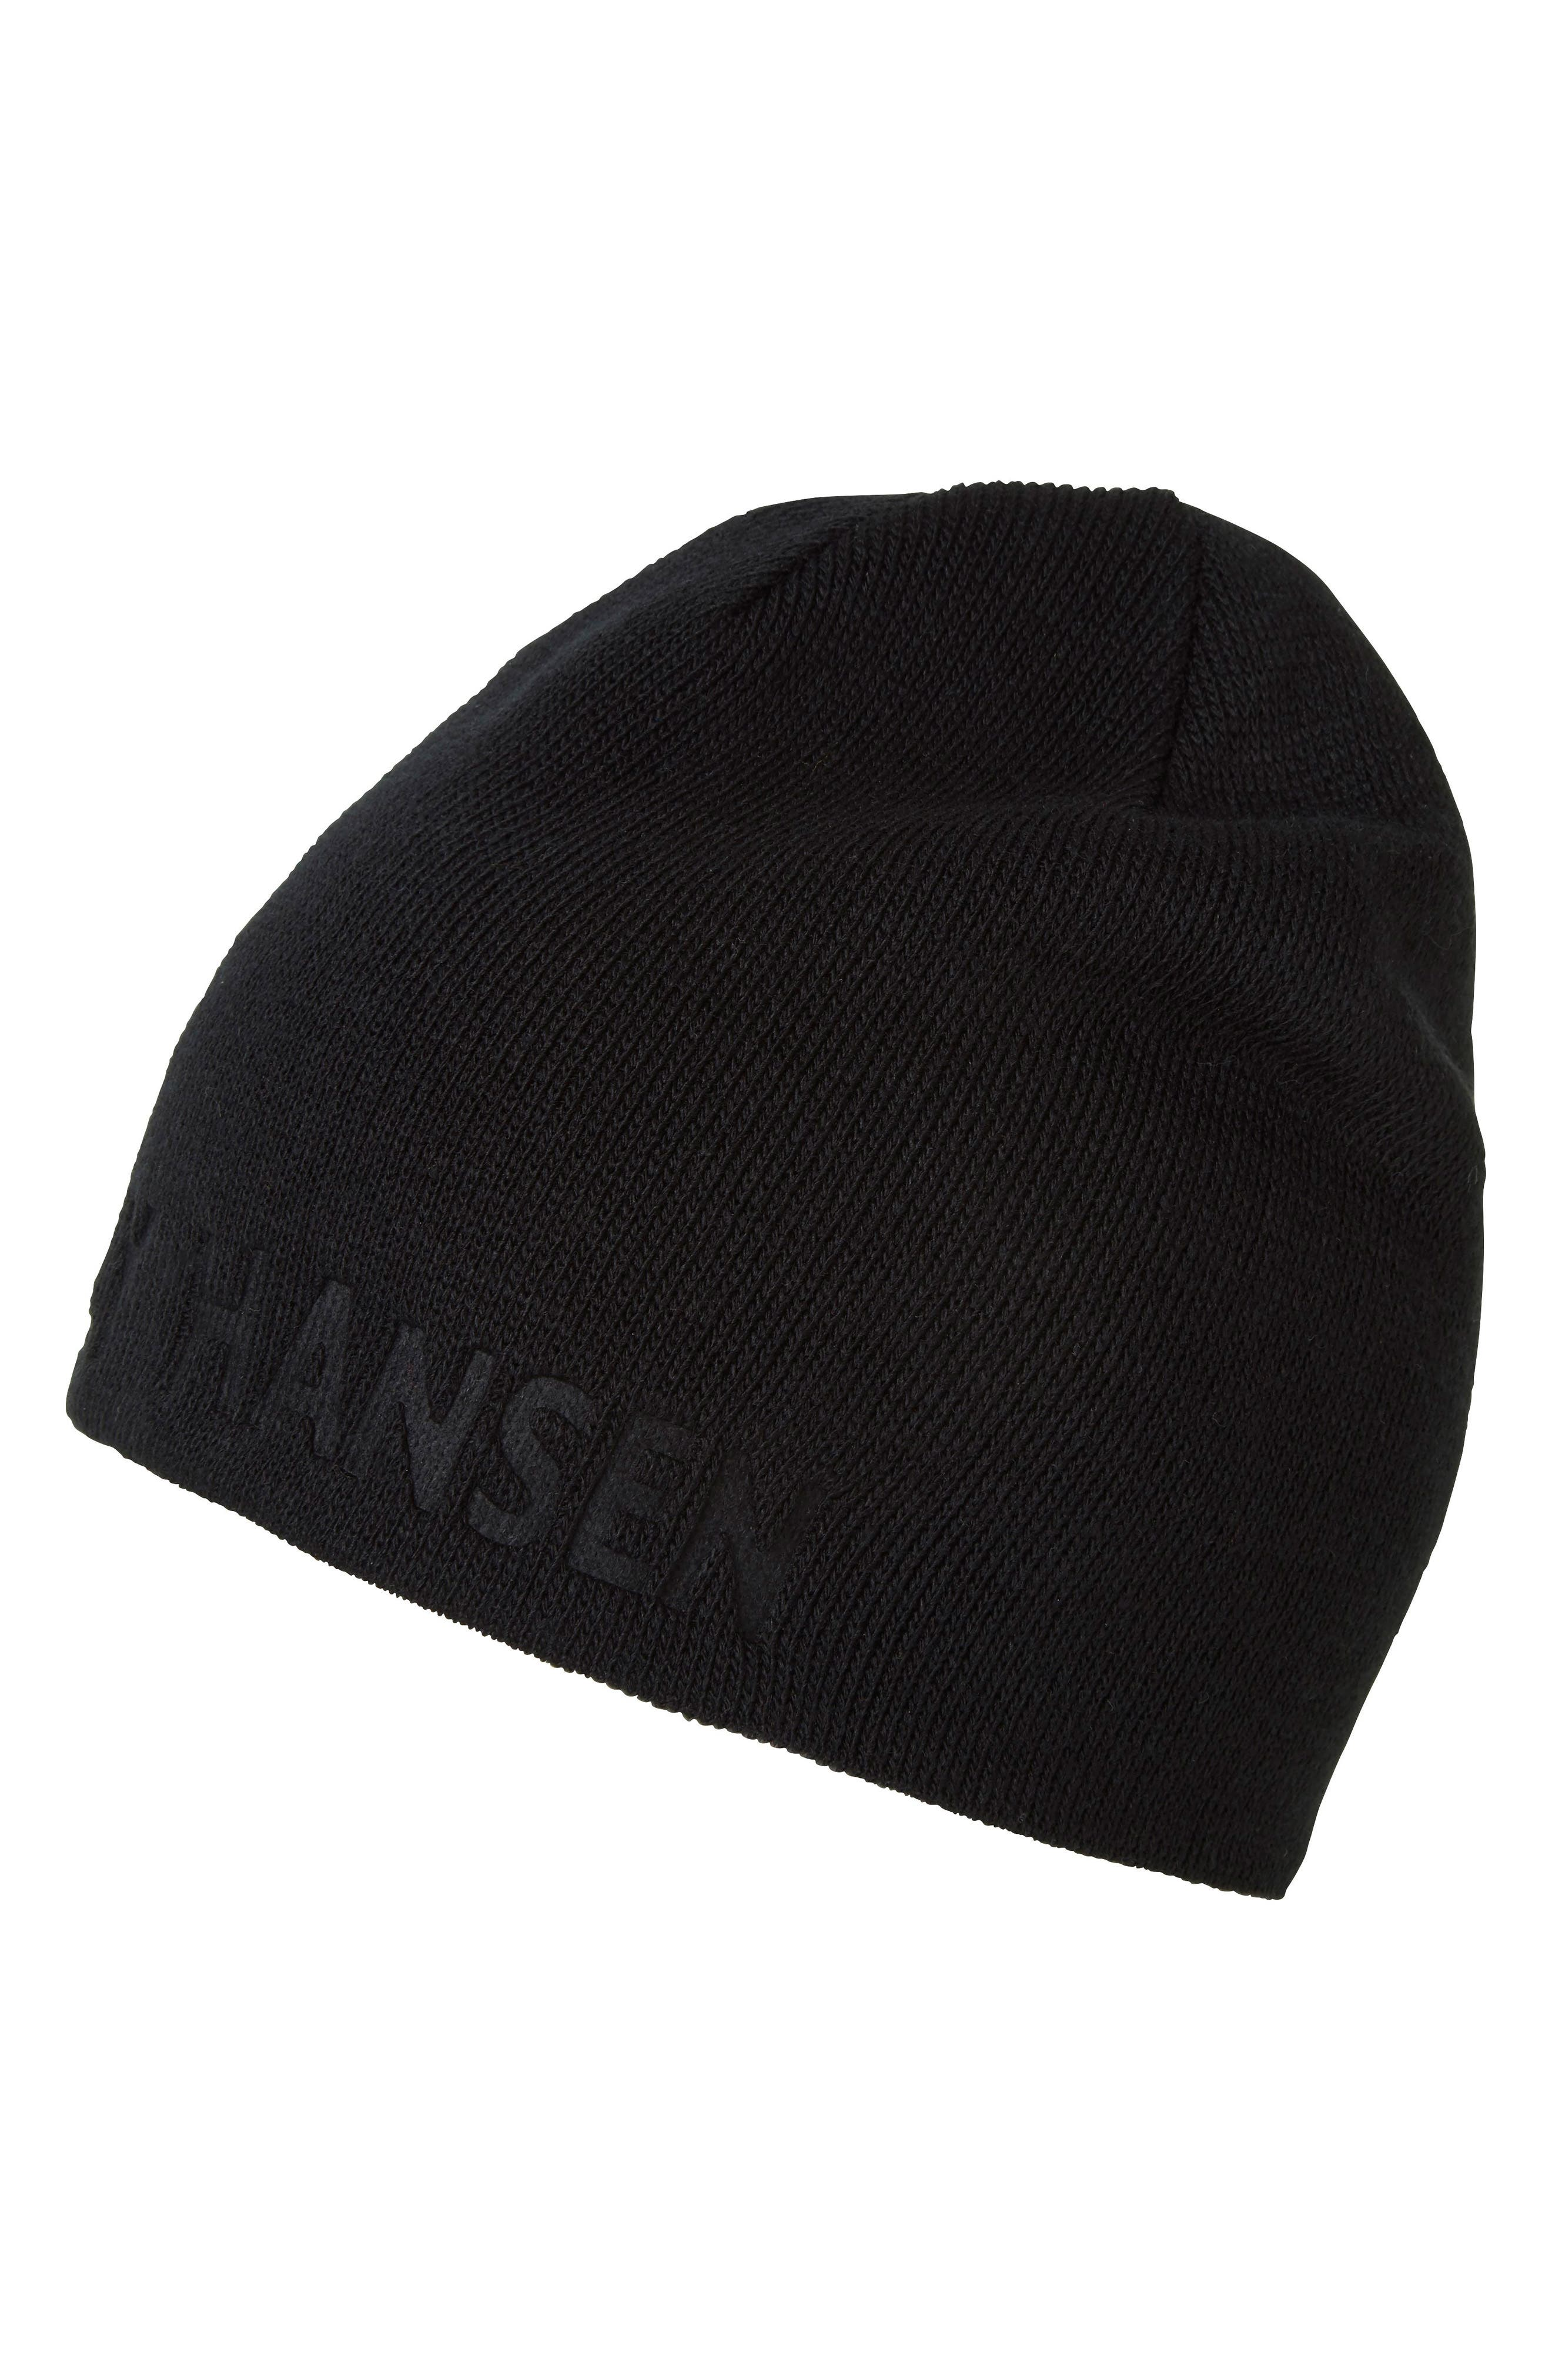 Main Image - Helly Hansen Outline Reversible Beanie